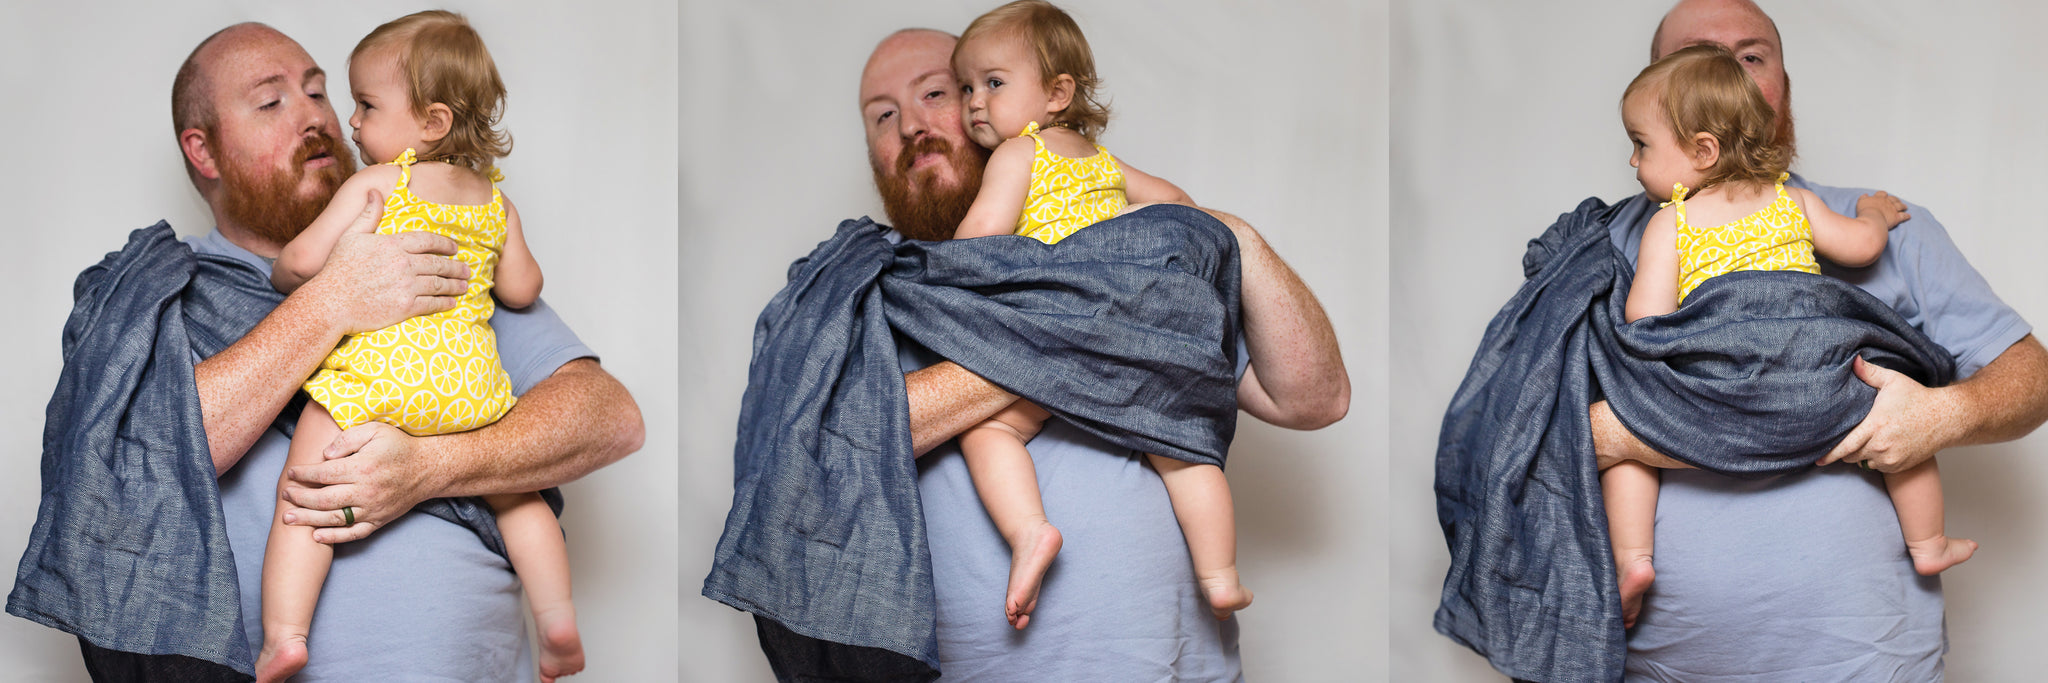 How to use a Studio Tekhni ring sling baby carrier.  Easy, stylish, modern linen fabric carriers from newborn and beyond.  A baby and registry essential item.